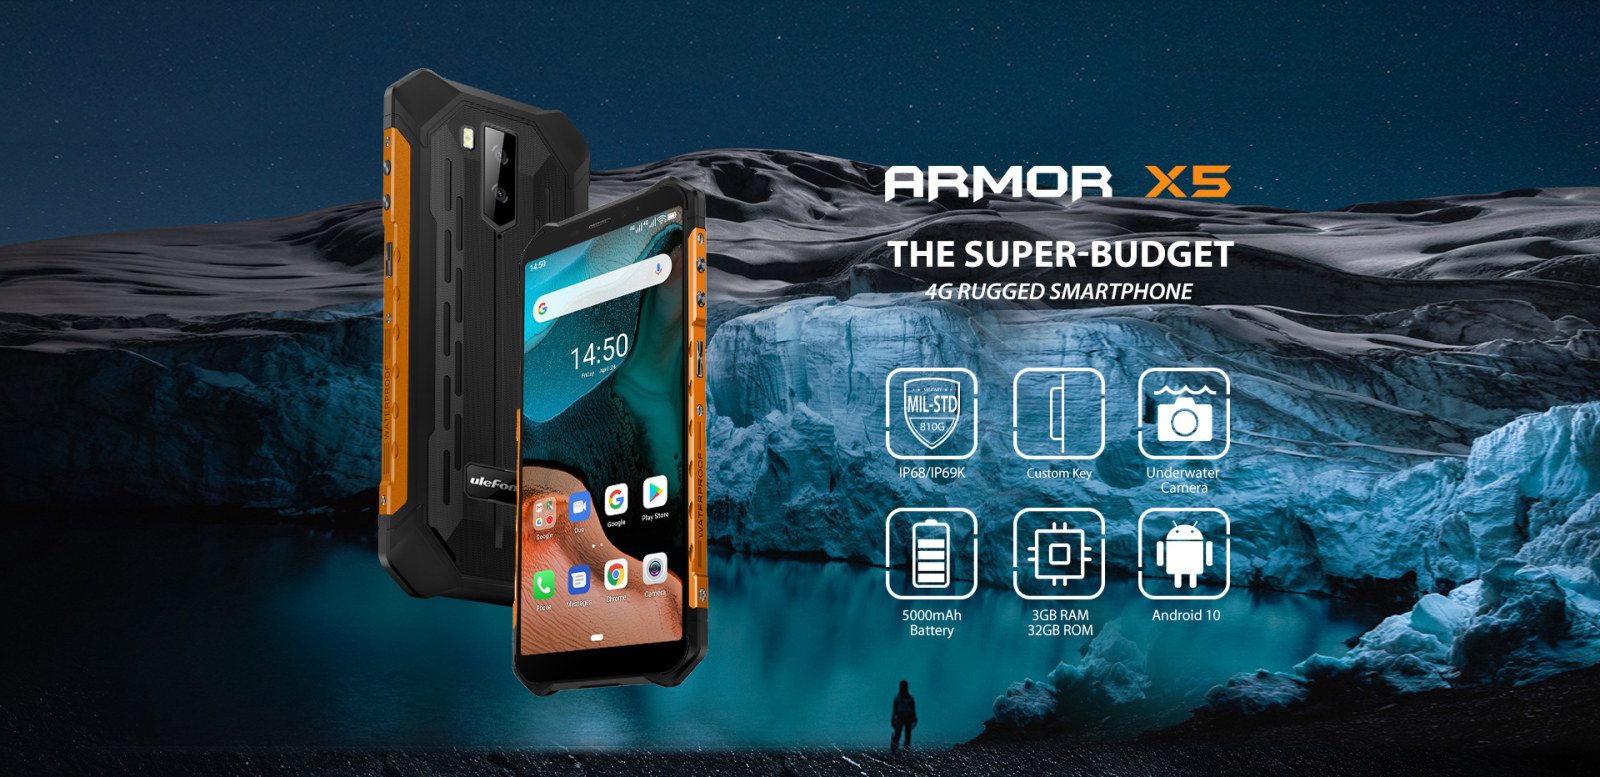 Armor X5 highlight IP68 / IP69K protection